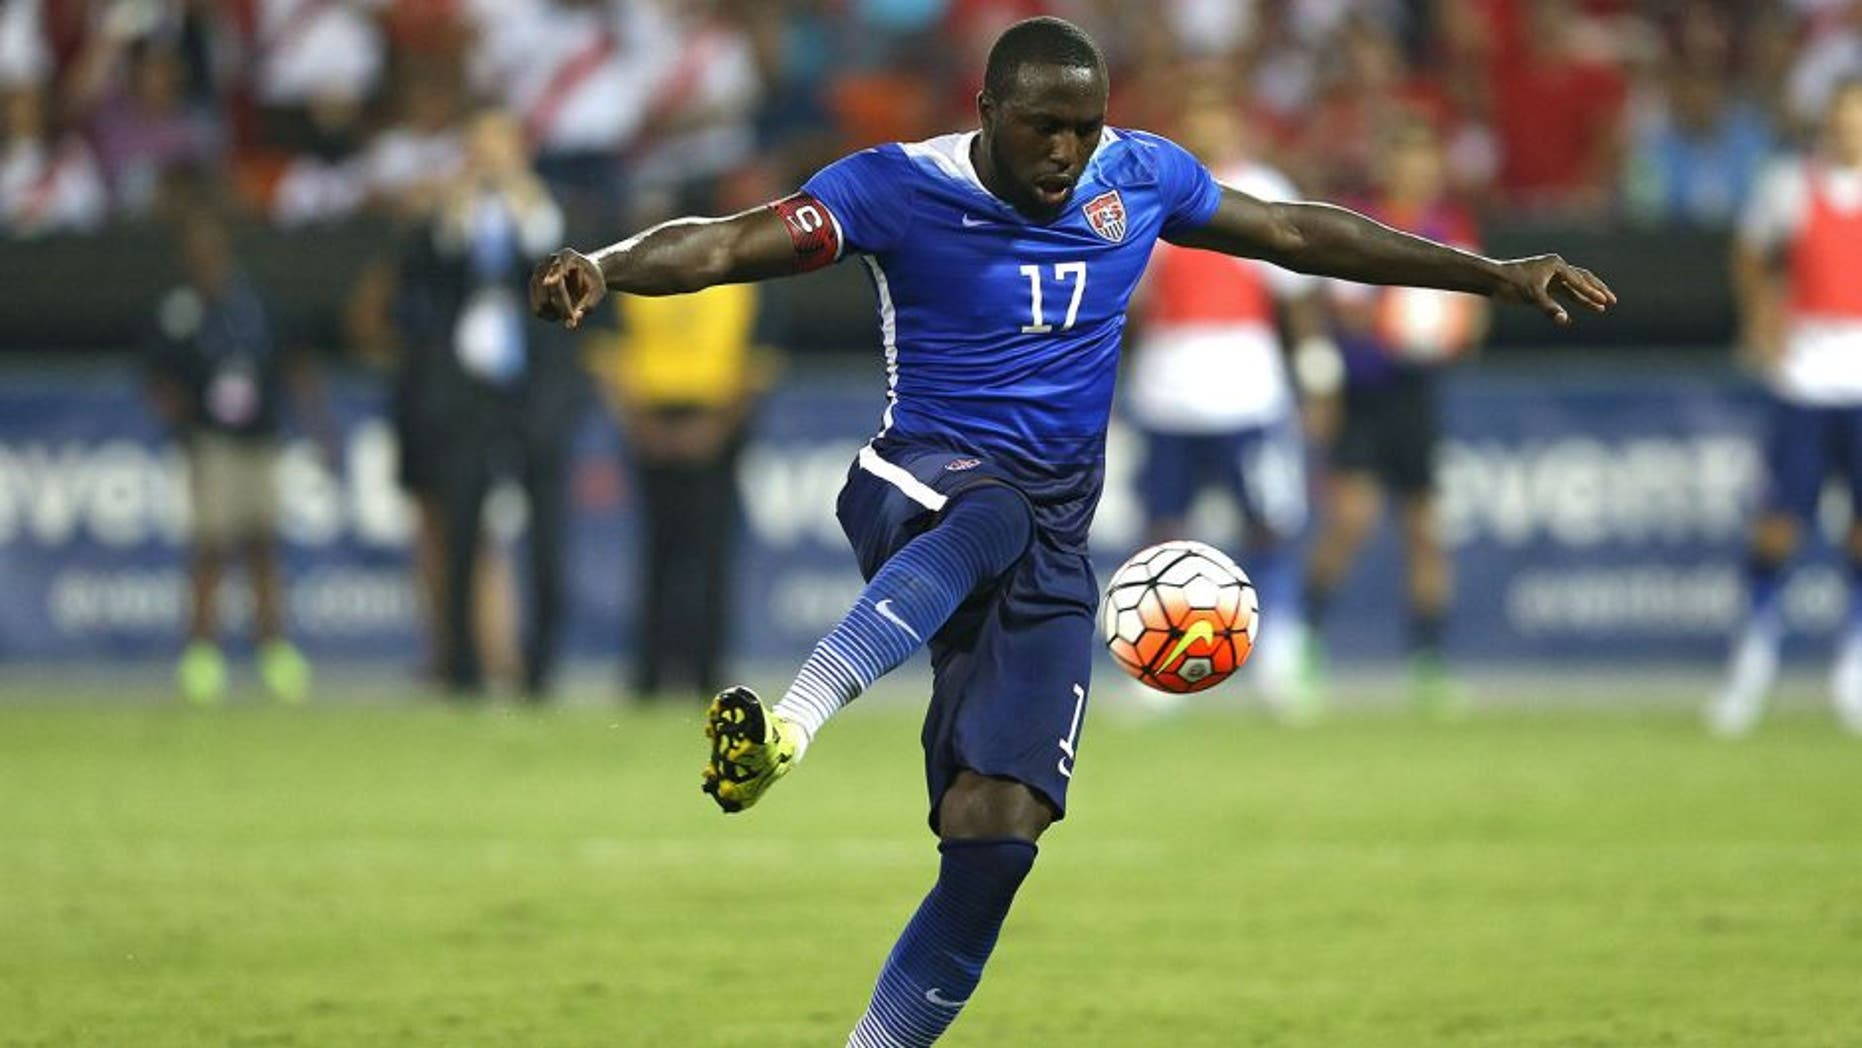 WASHINGTON, DC - SEPTEMBER 04: Jozy Altidore #17 of the United States scores a goal against Peru in the second half during an international friendly at RFK Stadium on September 4, 2015 in Washington, DC. (Photo by Patrick Smith/Getty Images)